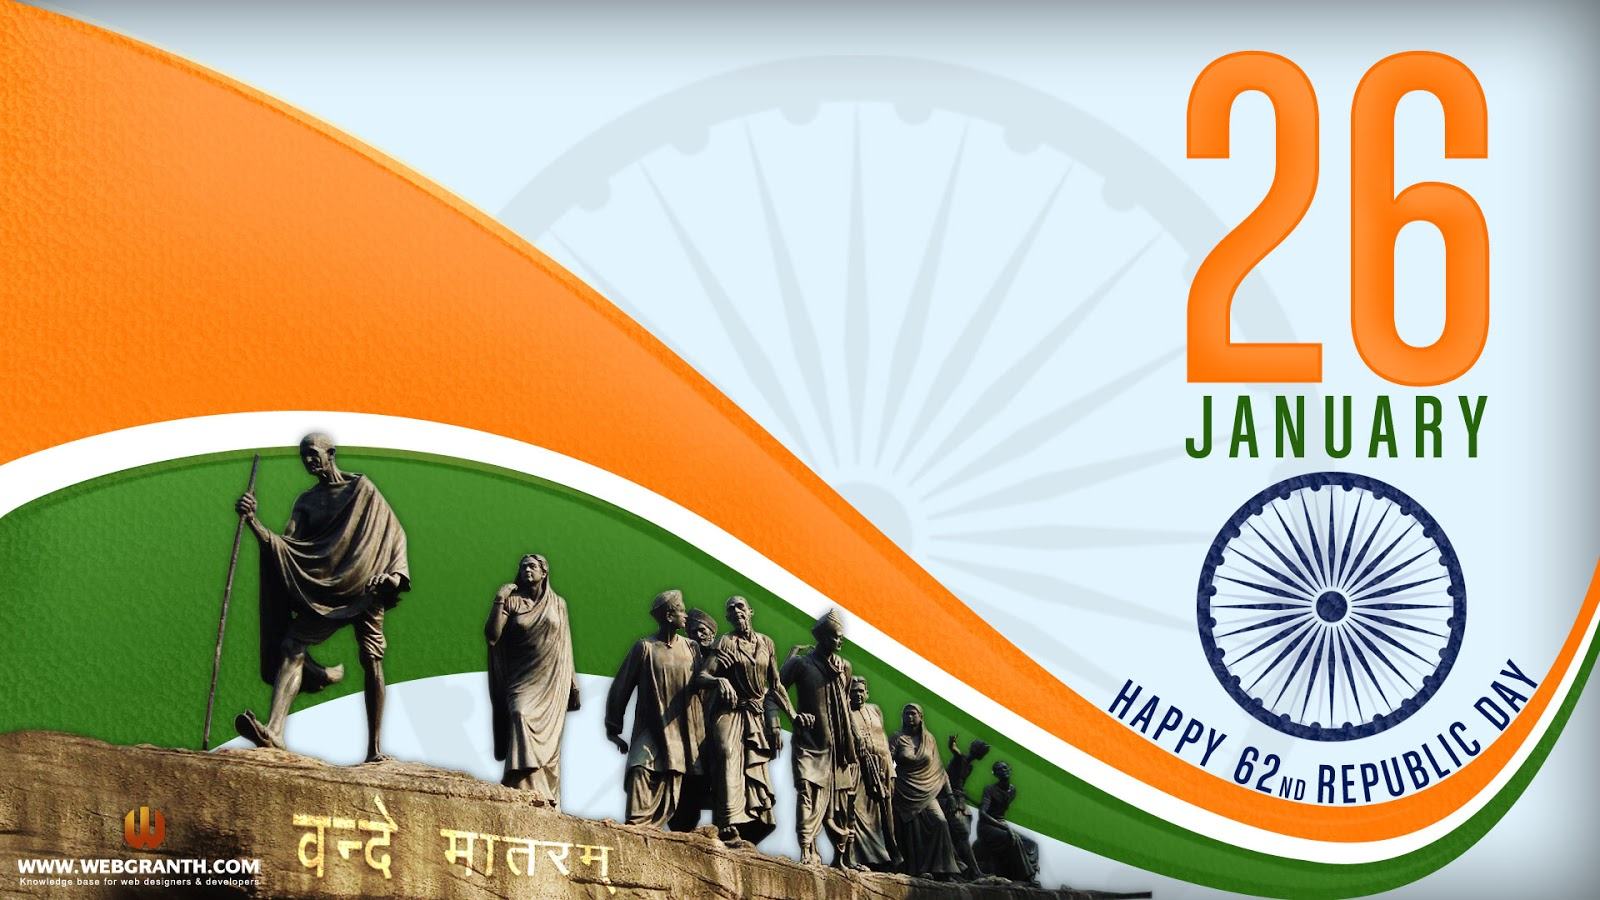 http://2.bp.blogspot.com/-UgwEw3Sj5Gs/UOciW_CUVXI/AAAAAAAAAy0/sKlq_oi99V4/s1600/republic-day-2013-wallpaper-photo-image-pictures.jpg